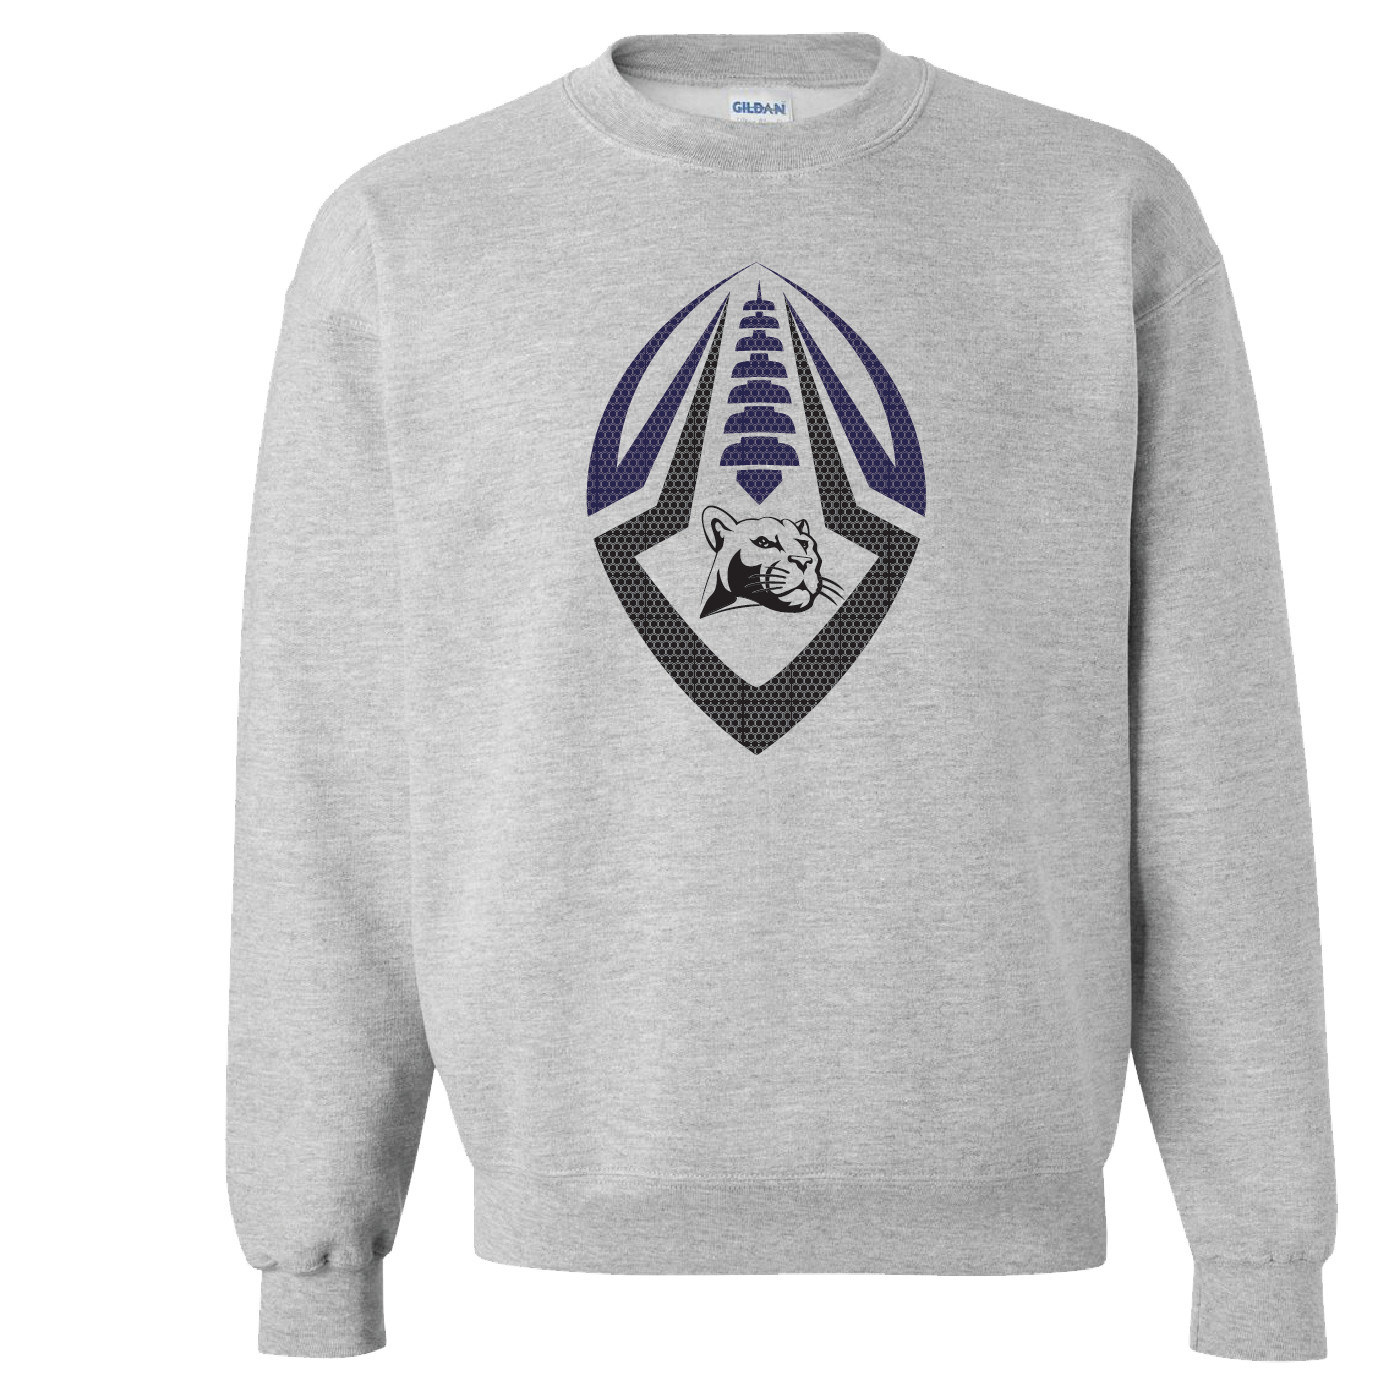 Gildan Gildan DryBlend Adult Crewneck Sweatshirt (Sports Grey)